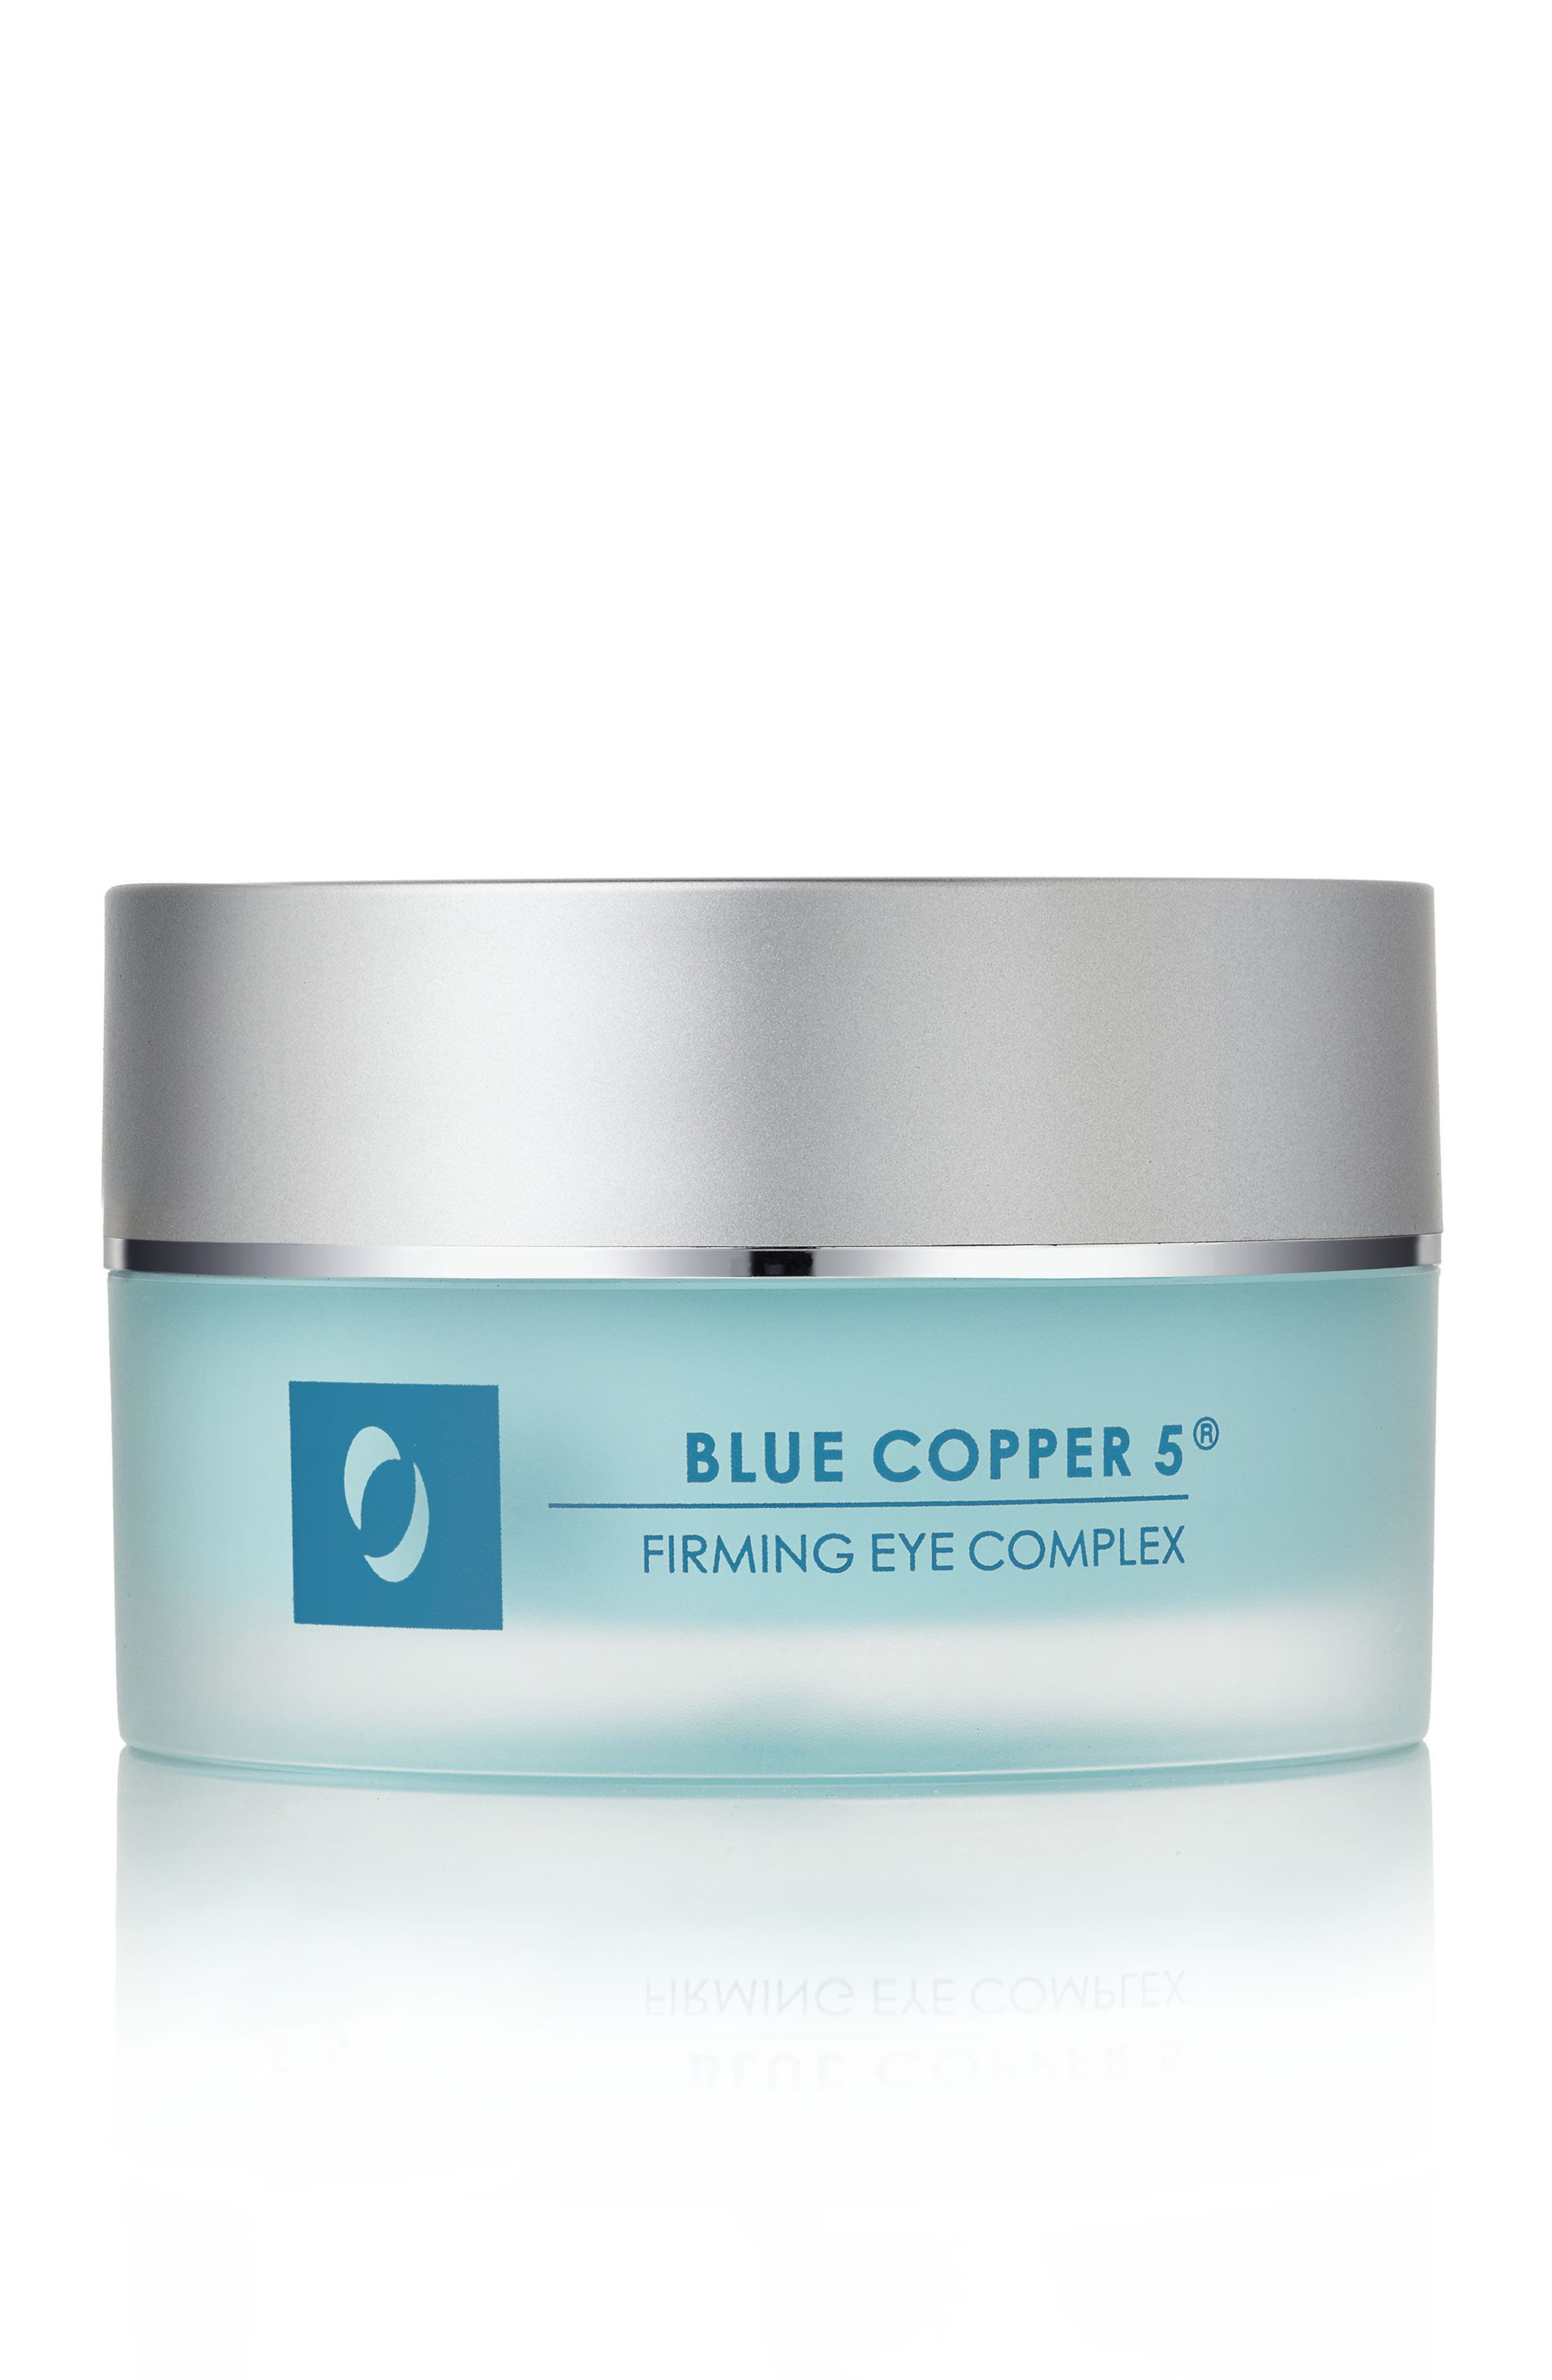 Alternate Image 1 Selected - Osmotics Cosmeceuticals Blue Copper 5 Firming Eye Repair